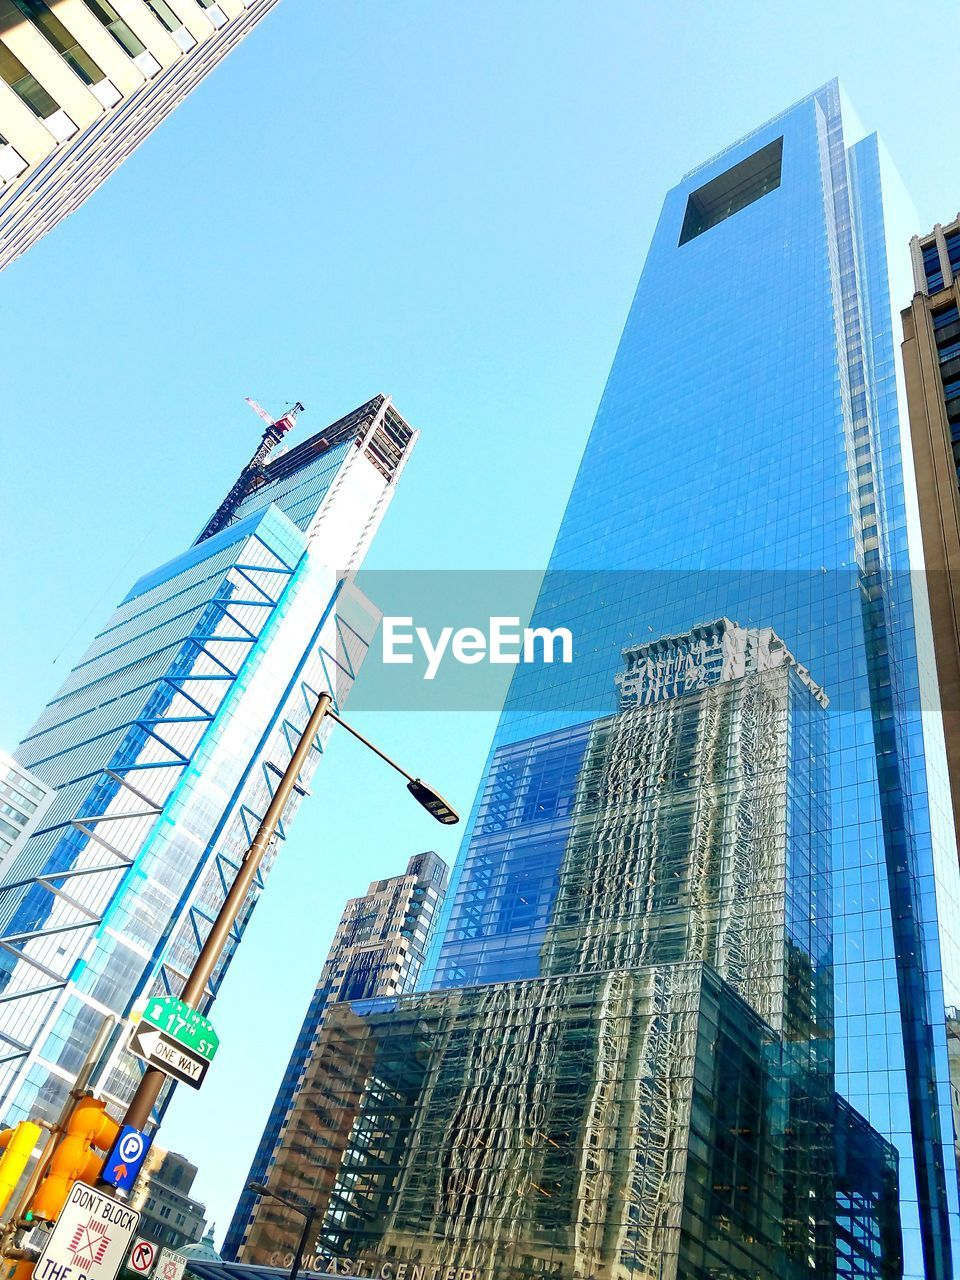 skyscraper, architecture, building exterior, built structure, city, low angle view, tall - high, modern, tower, office building, tall, financial district, day, downtown district, blue, development, clear sky, outdoors, city life, travel destinations, growth, no people, cityscape, urban skyline, corporate business, office park, sky